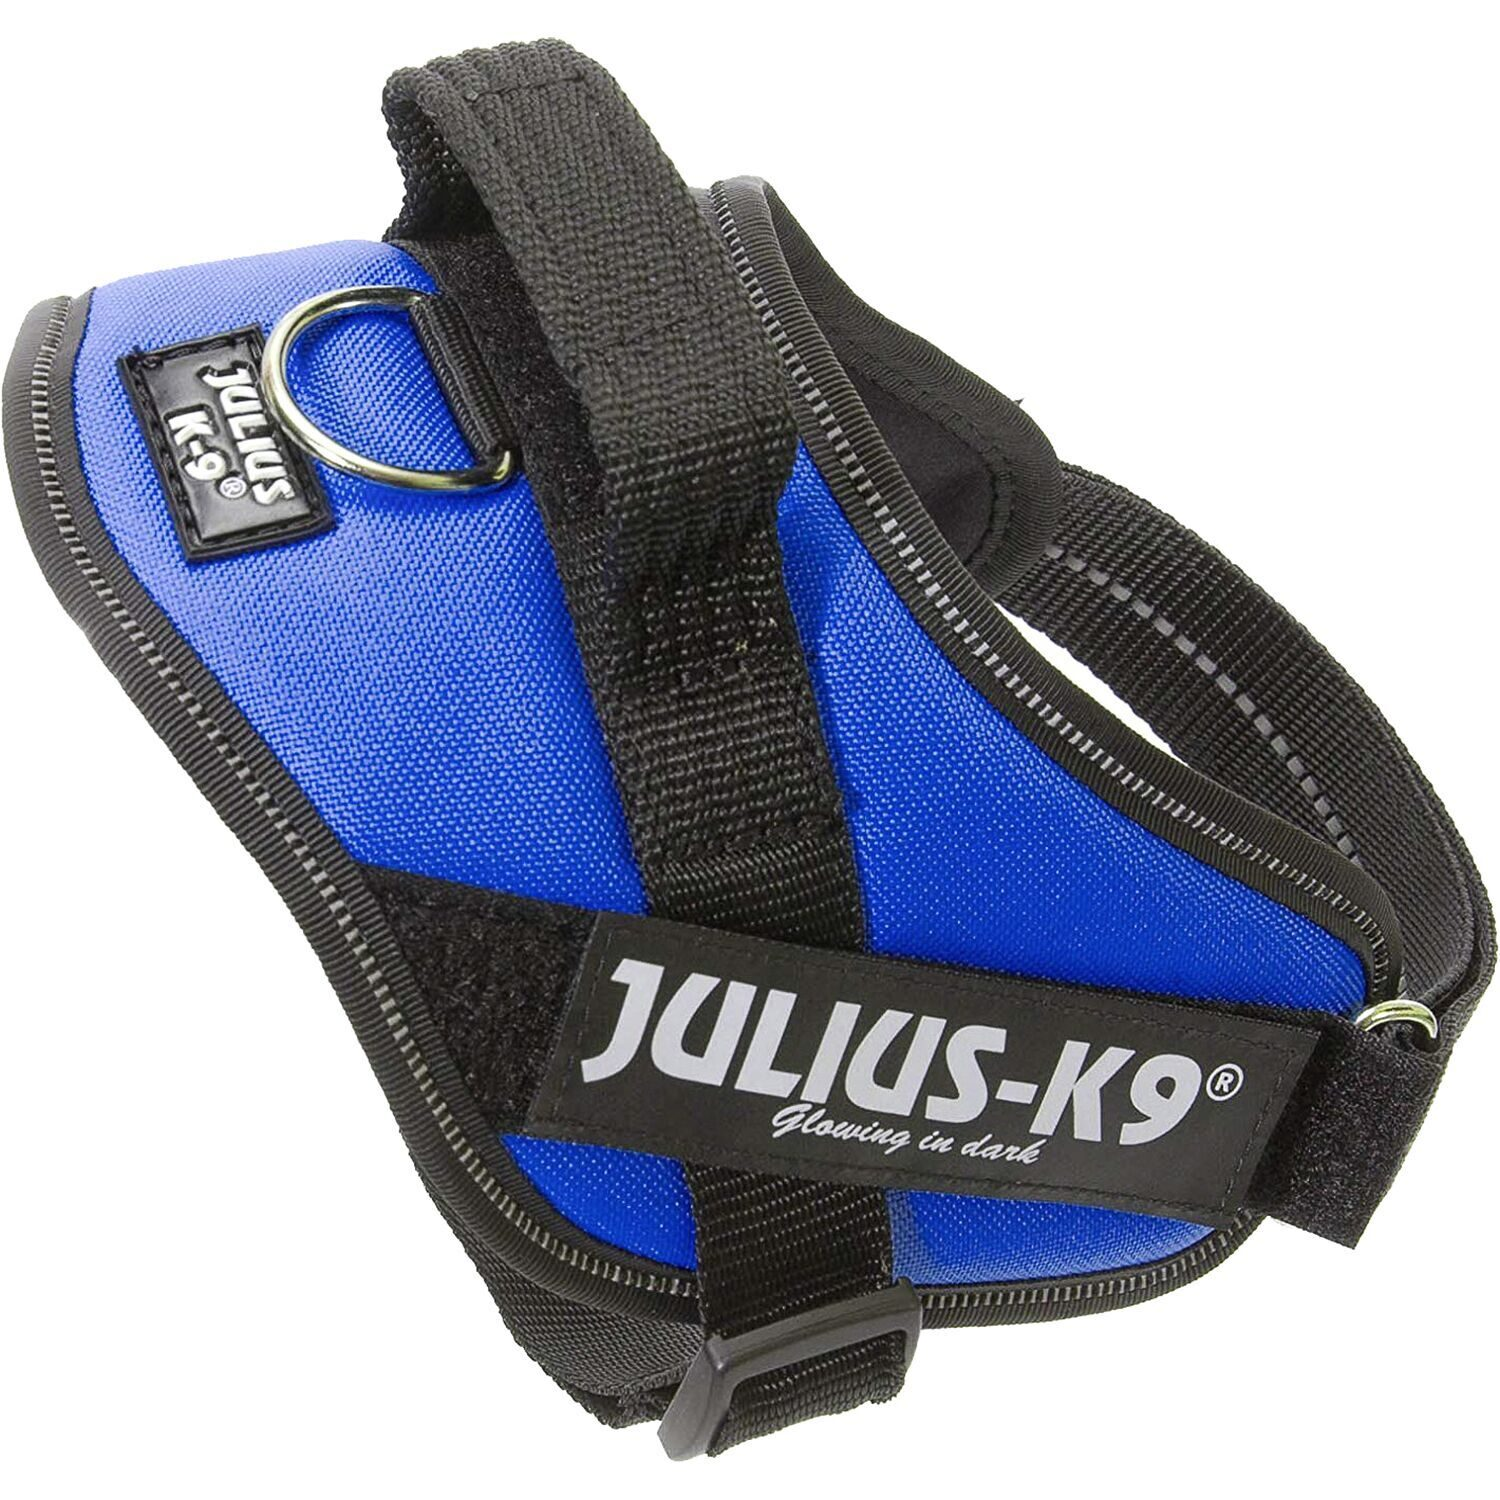 JULIUS-K9 шлейка для собак IDC-Powerharness Mini (49-67см 7-15кг), синий 2